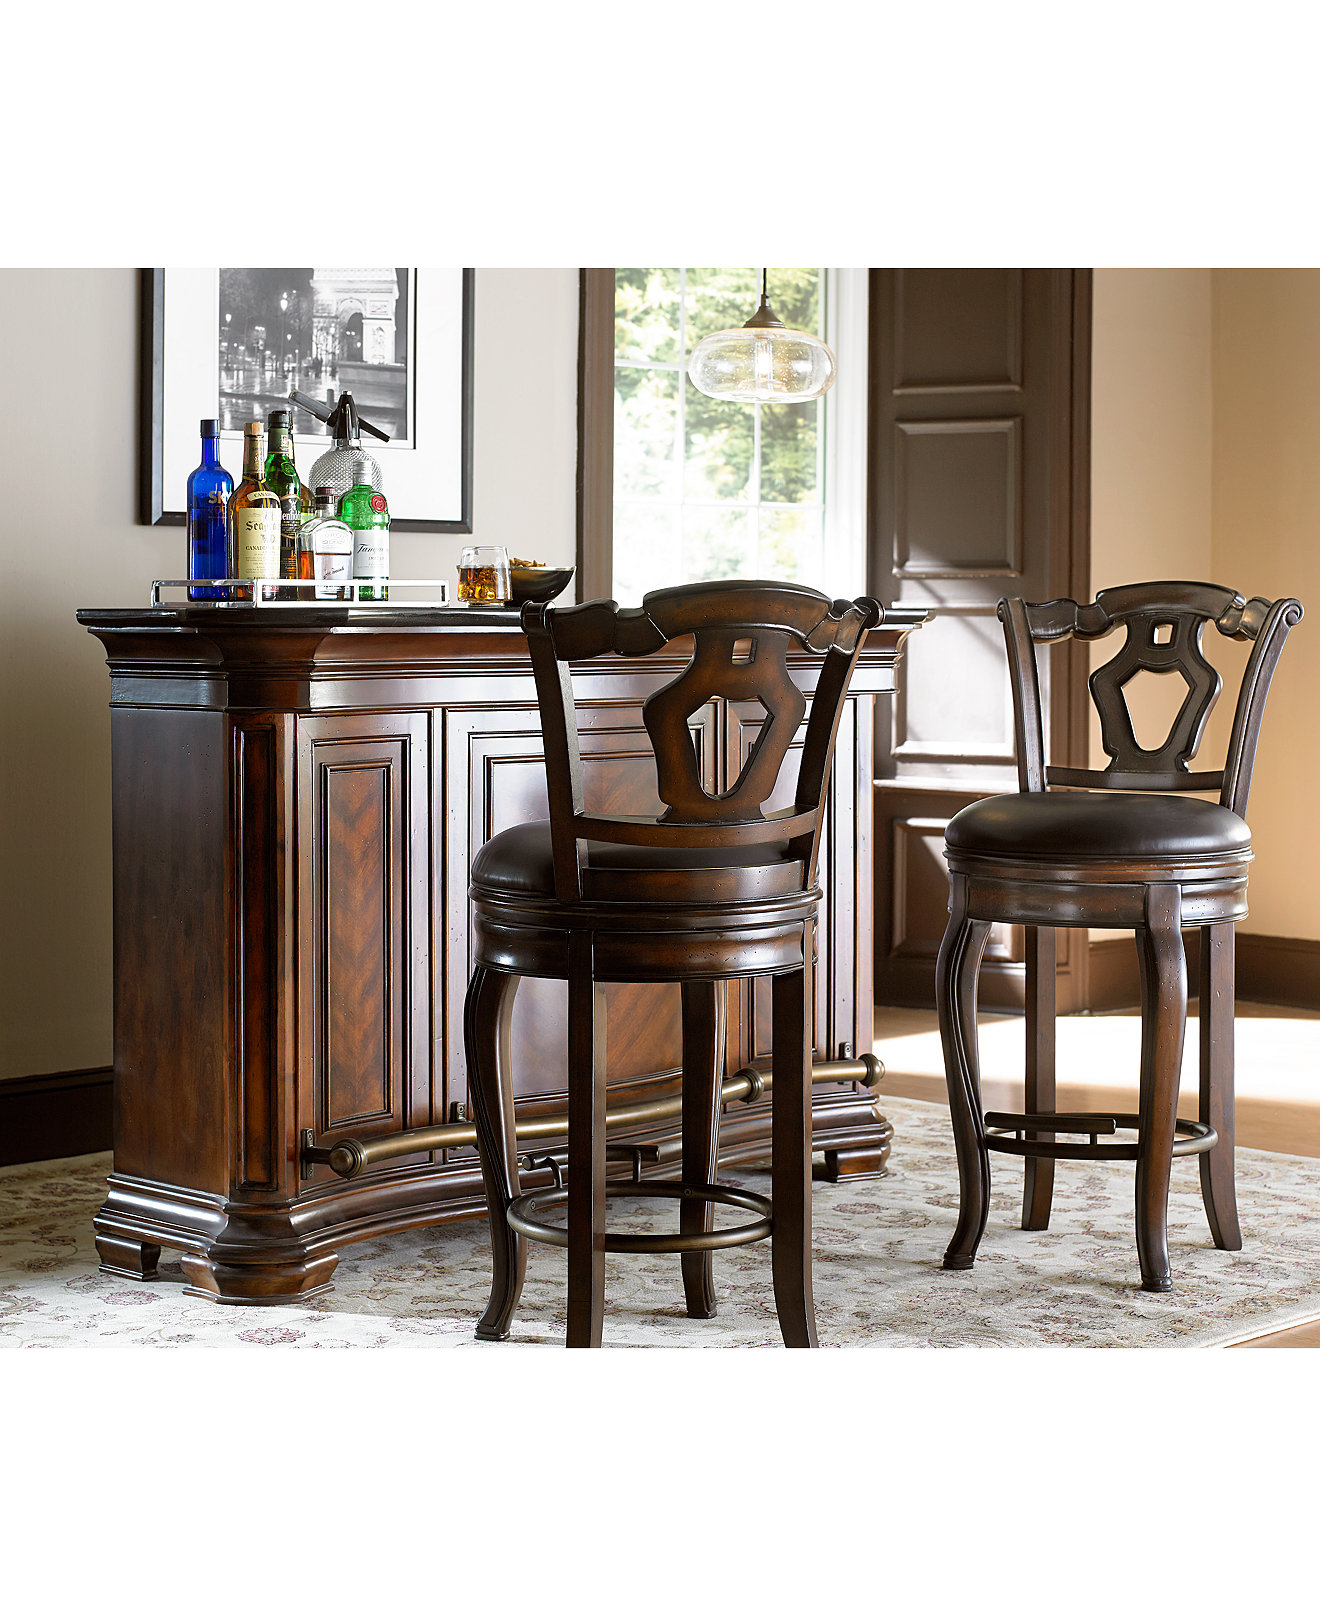 Toscano Home Bar Collection